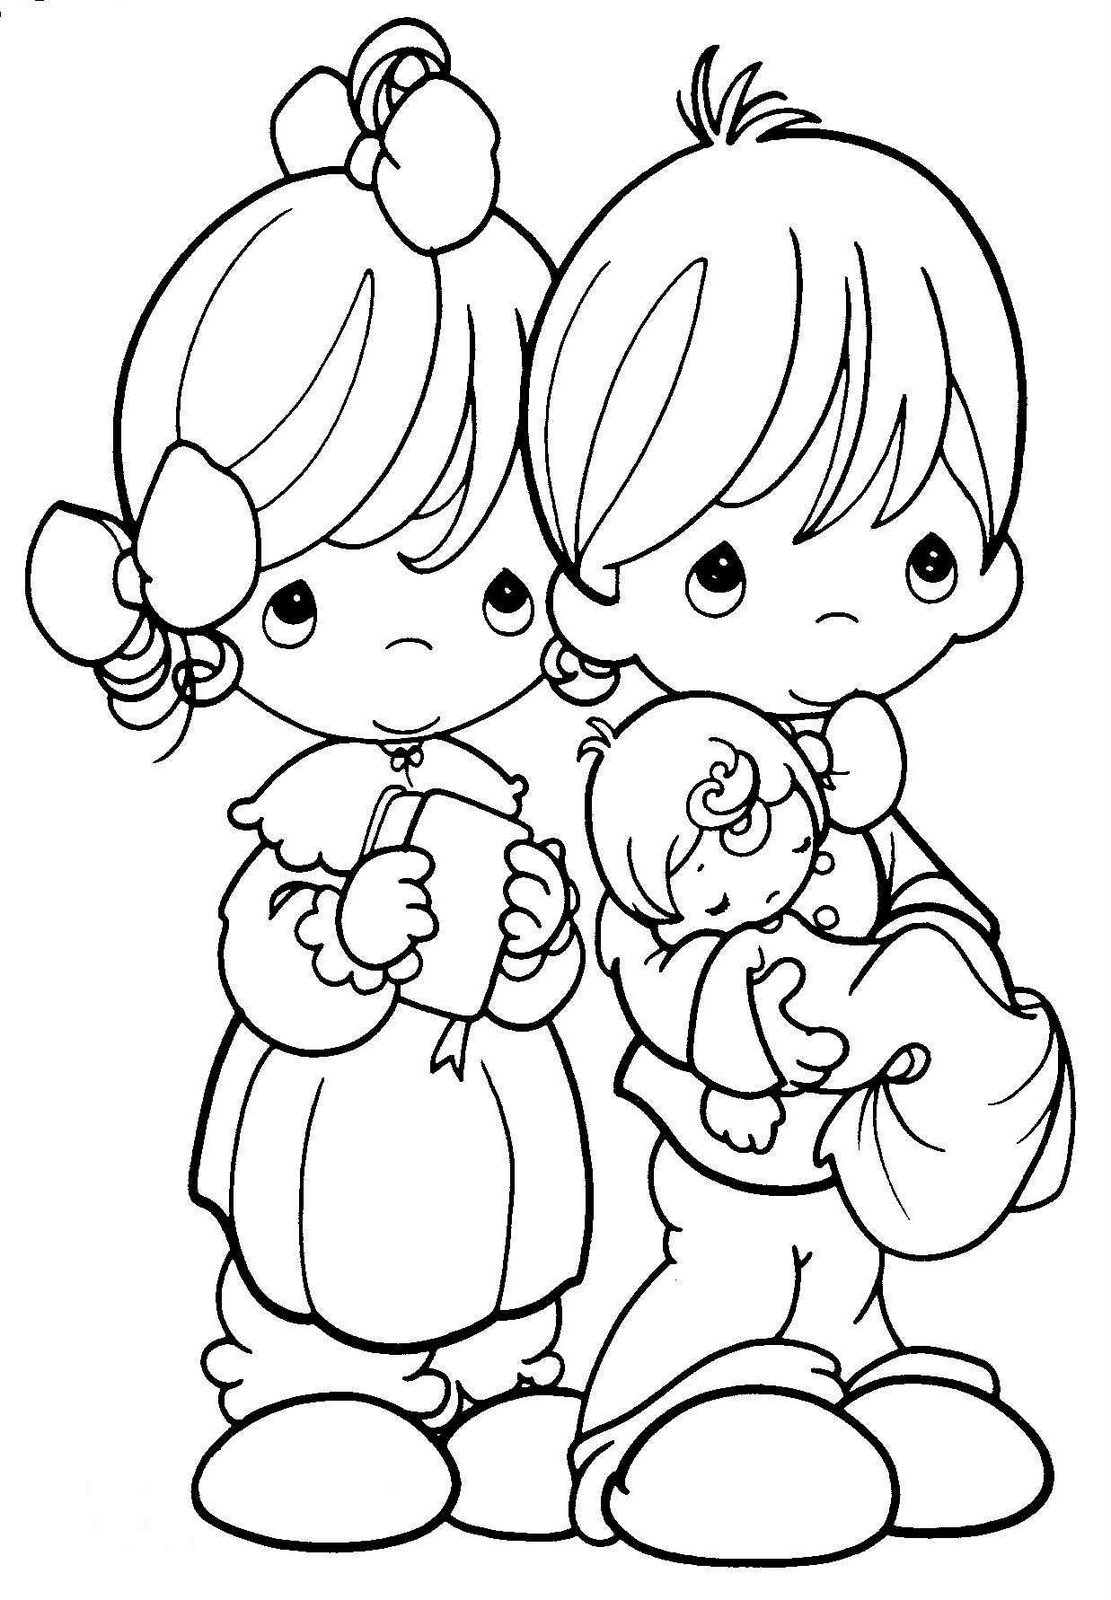 baptism coloring pages for children - photo#23